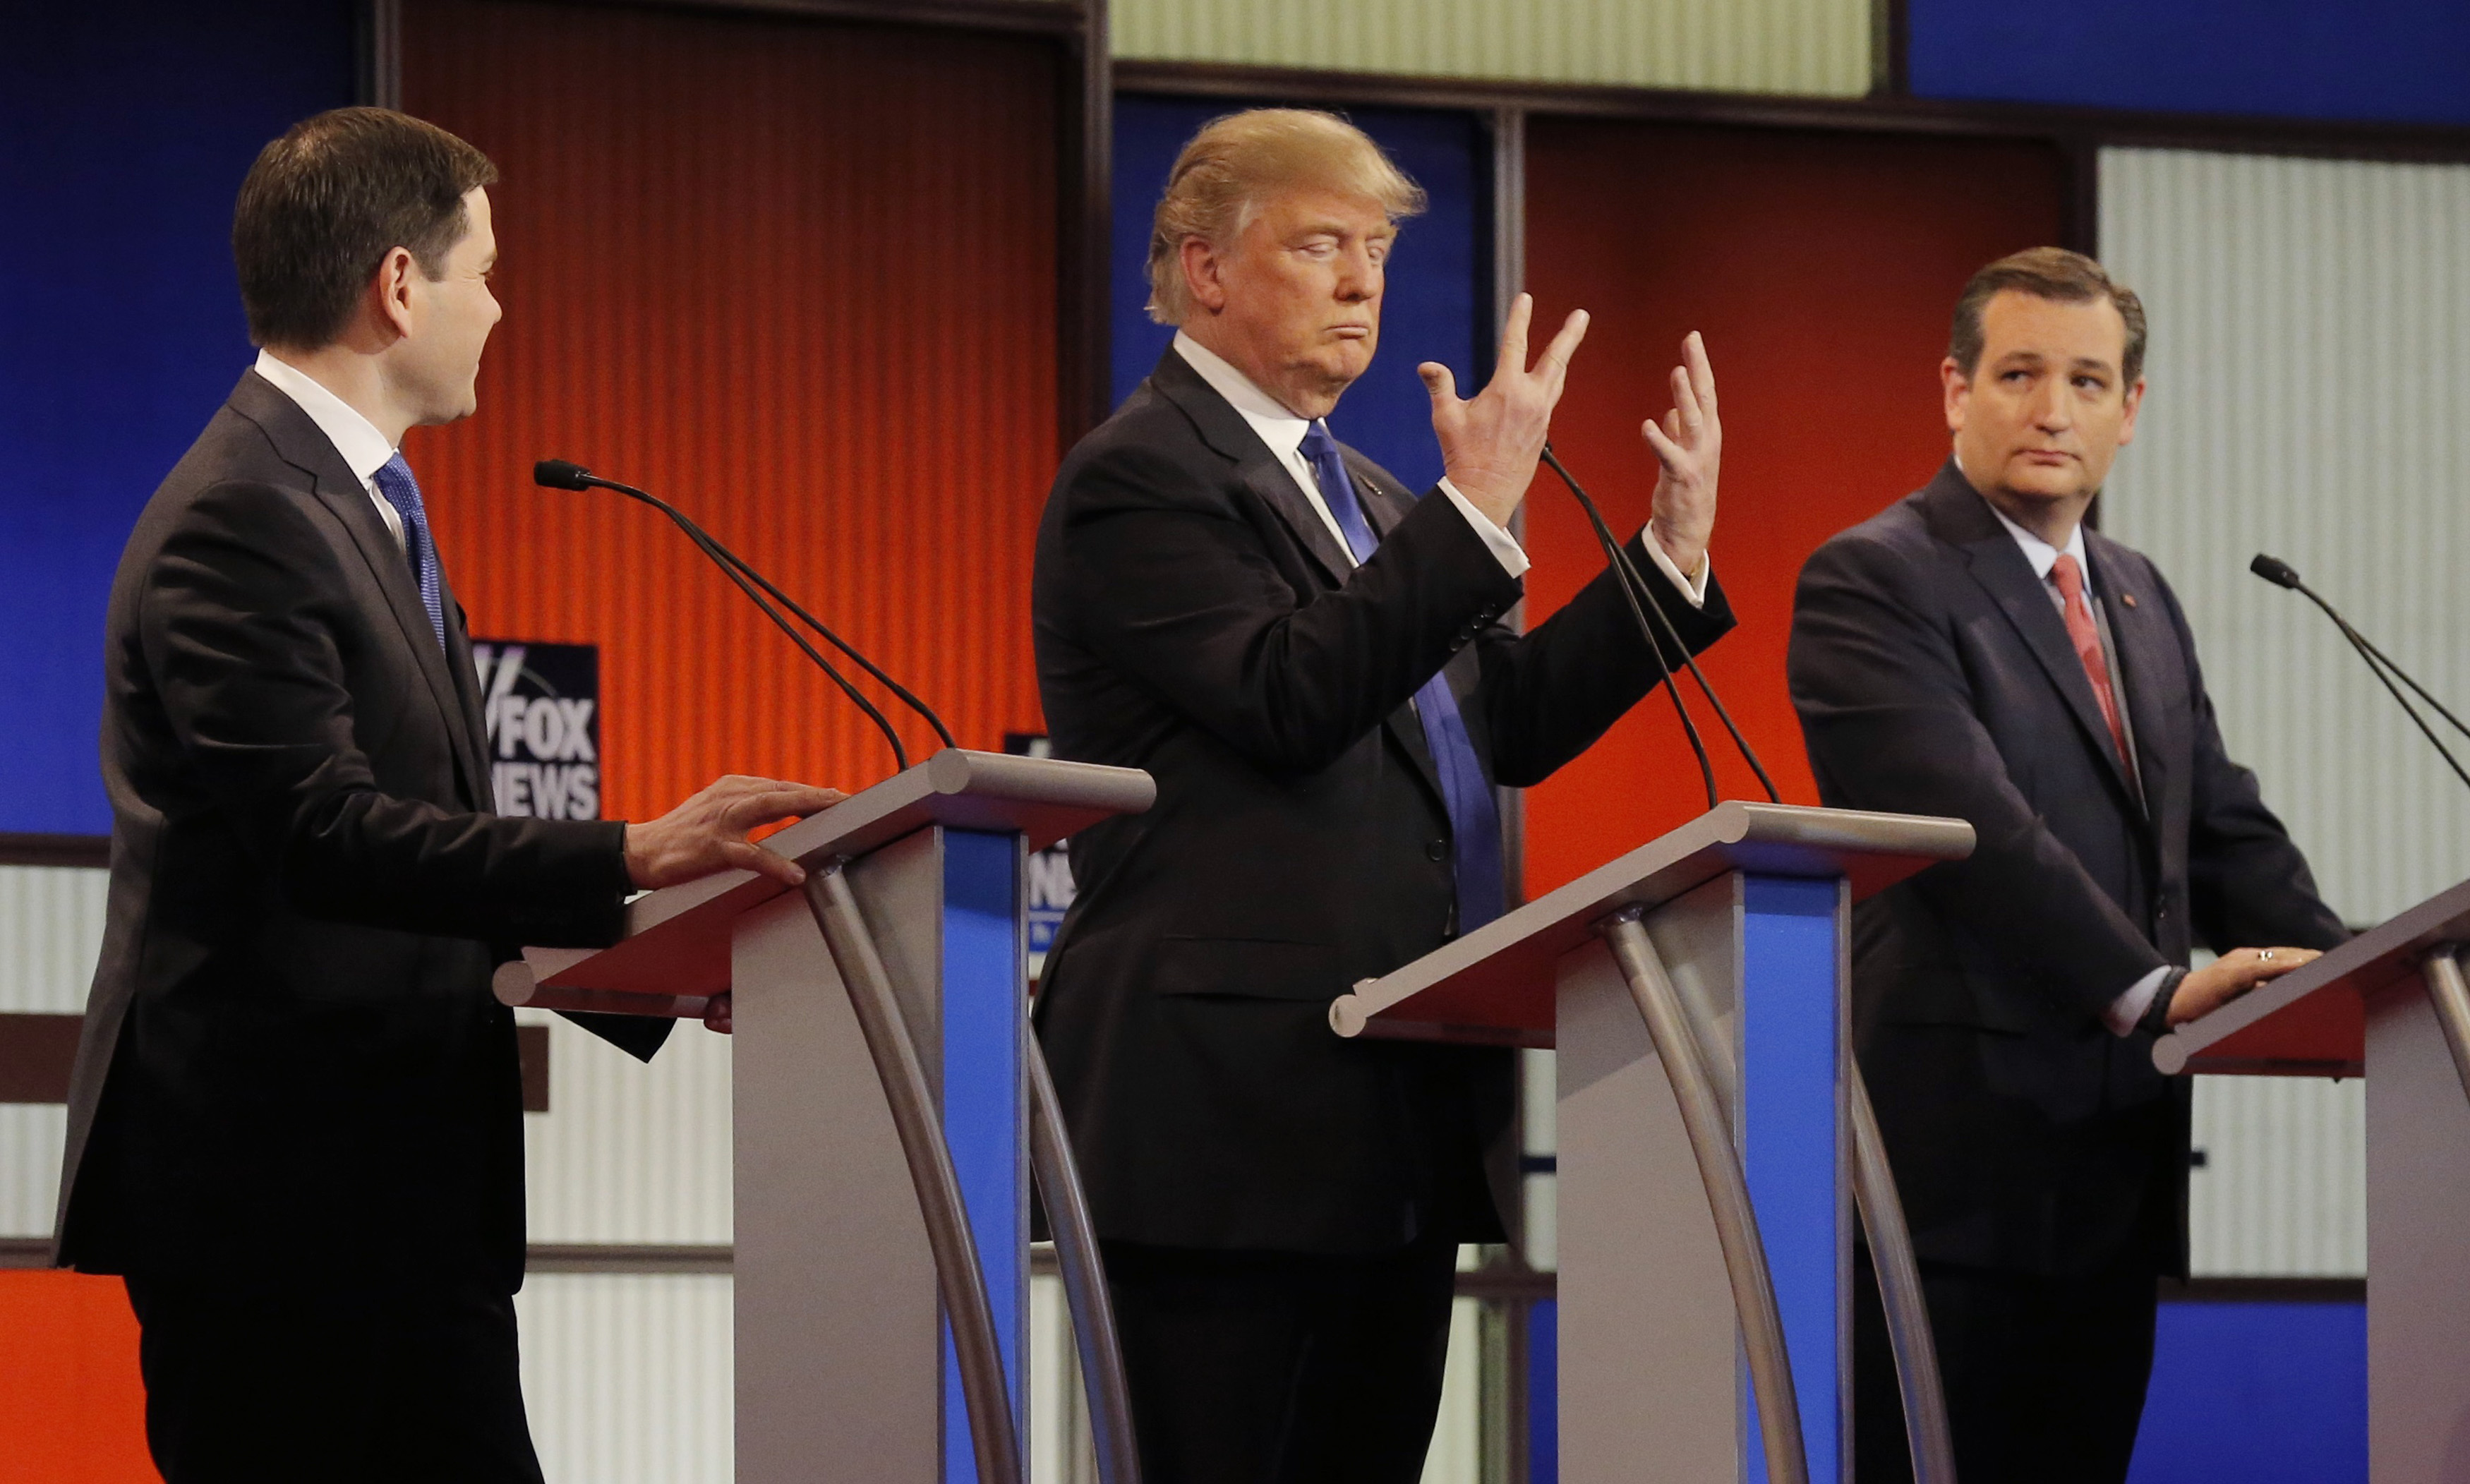 Republican U.S. presidential candidate Donald Trump shows off the size of his hands as rivals Marco Rubio (L) and Ted Cruz (R) look on at the start of the U.S. Republican presidential candidates debate in Detroit, Michigan, on March 3, 2016.